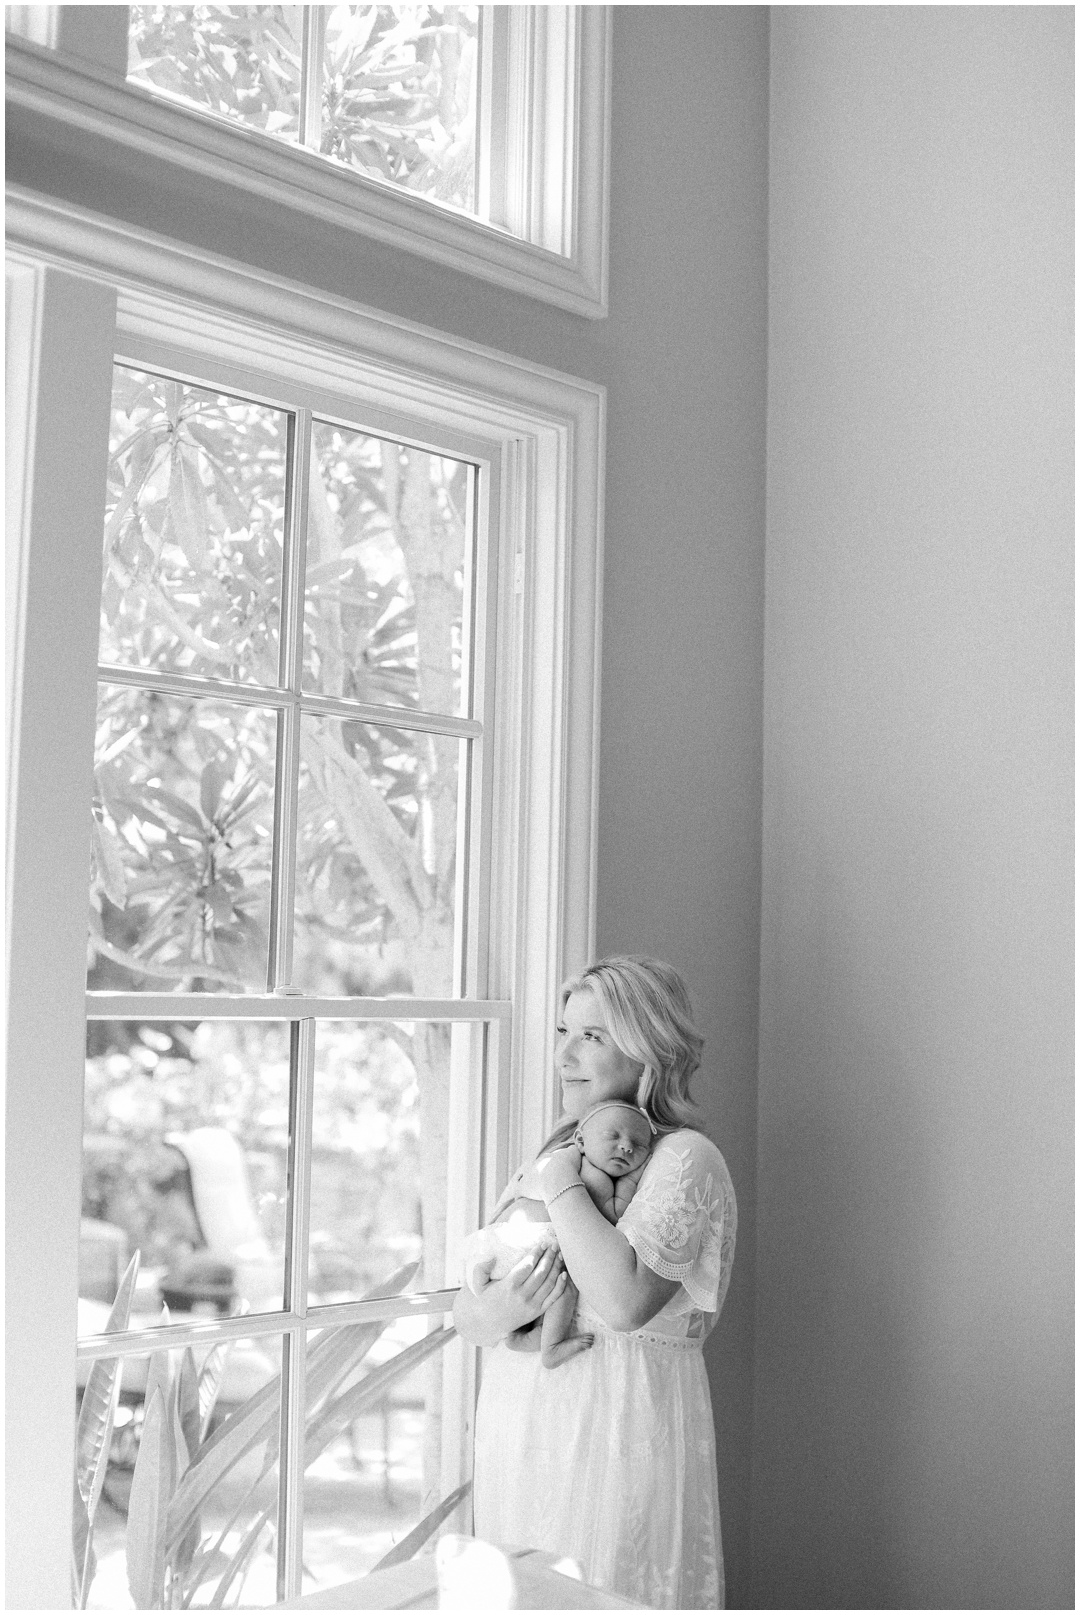 Newport_Beach_Newborn_Light_Airy_Natural_Photographer_Newport_Beach_Photographer_Orange_County_Family_Photographer_Cori_Kleckner_Photography_Newport_Beach_Photographer_newborn_kole_calhoun56_kole_calhoun_Jennifer_Calhoun_Knox_Calhoun_3766.jpg